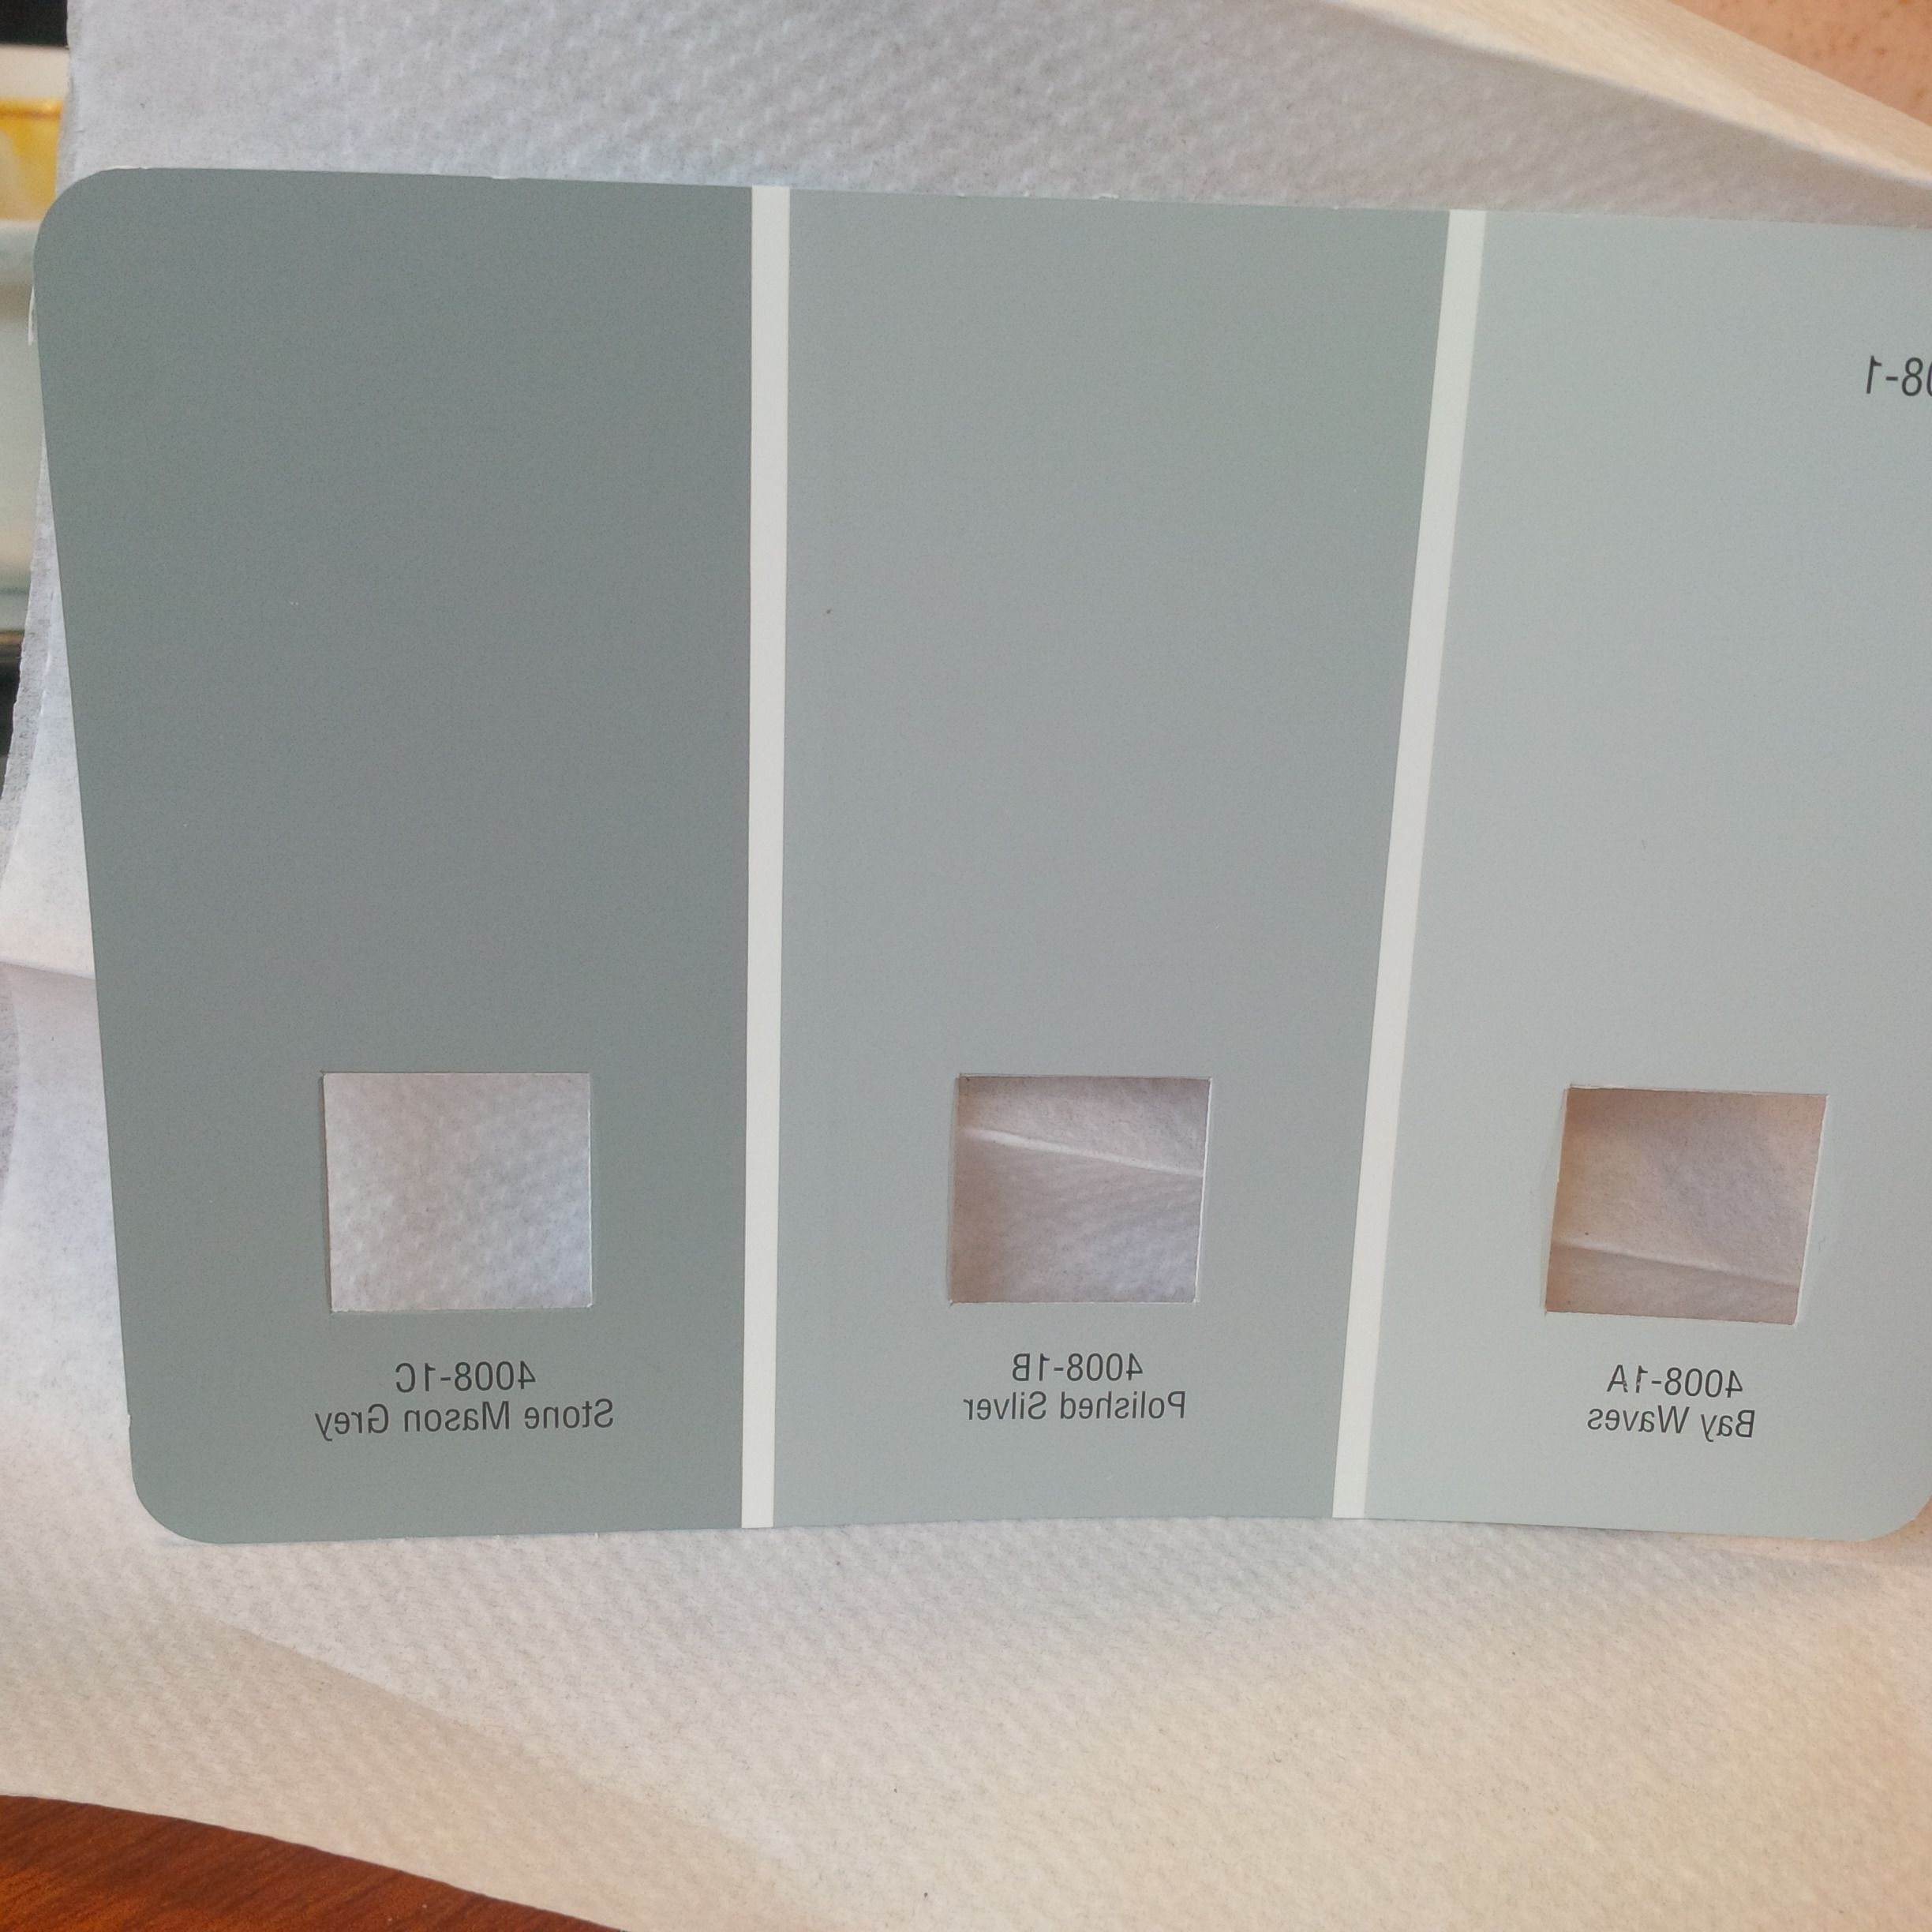 Recommended 10 Valspar Bathroom Colors, Some Of The 20+ Valspar Bathroom Color Inspirations